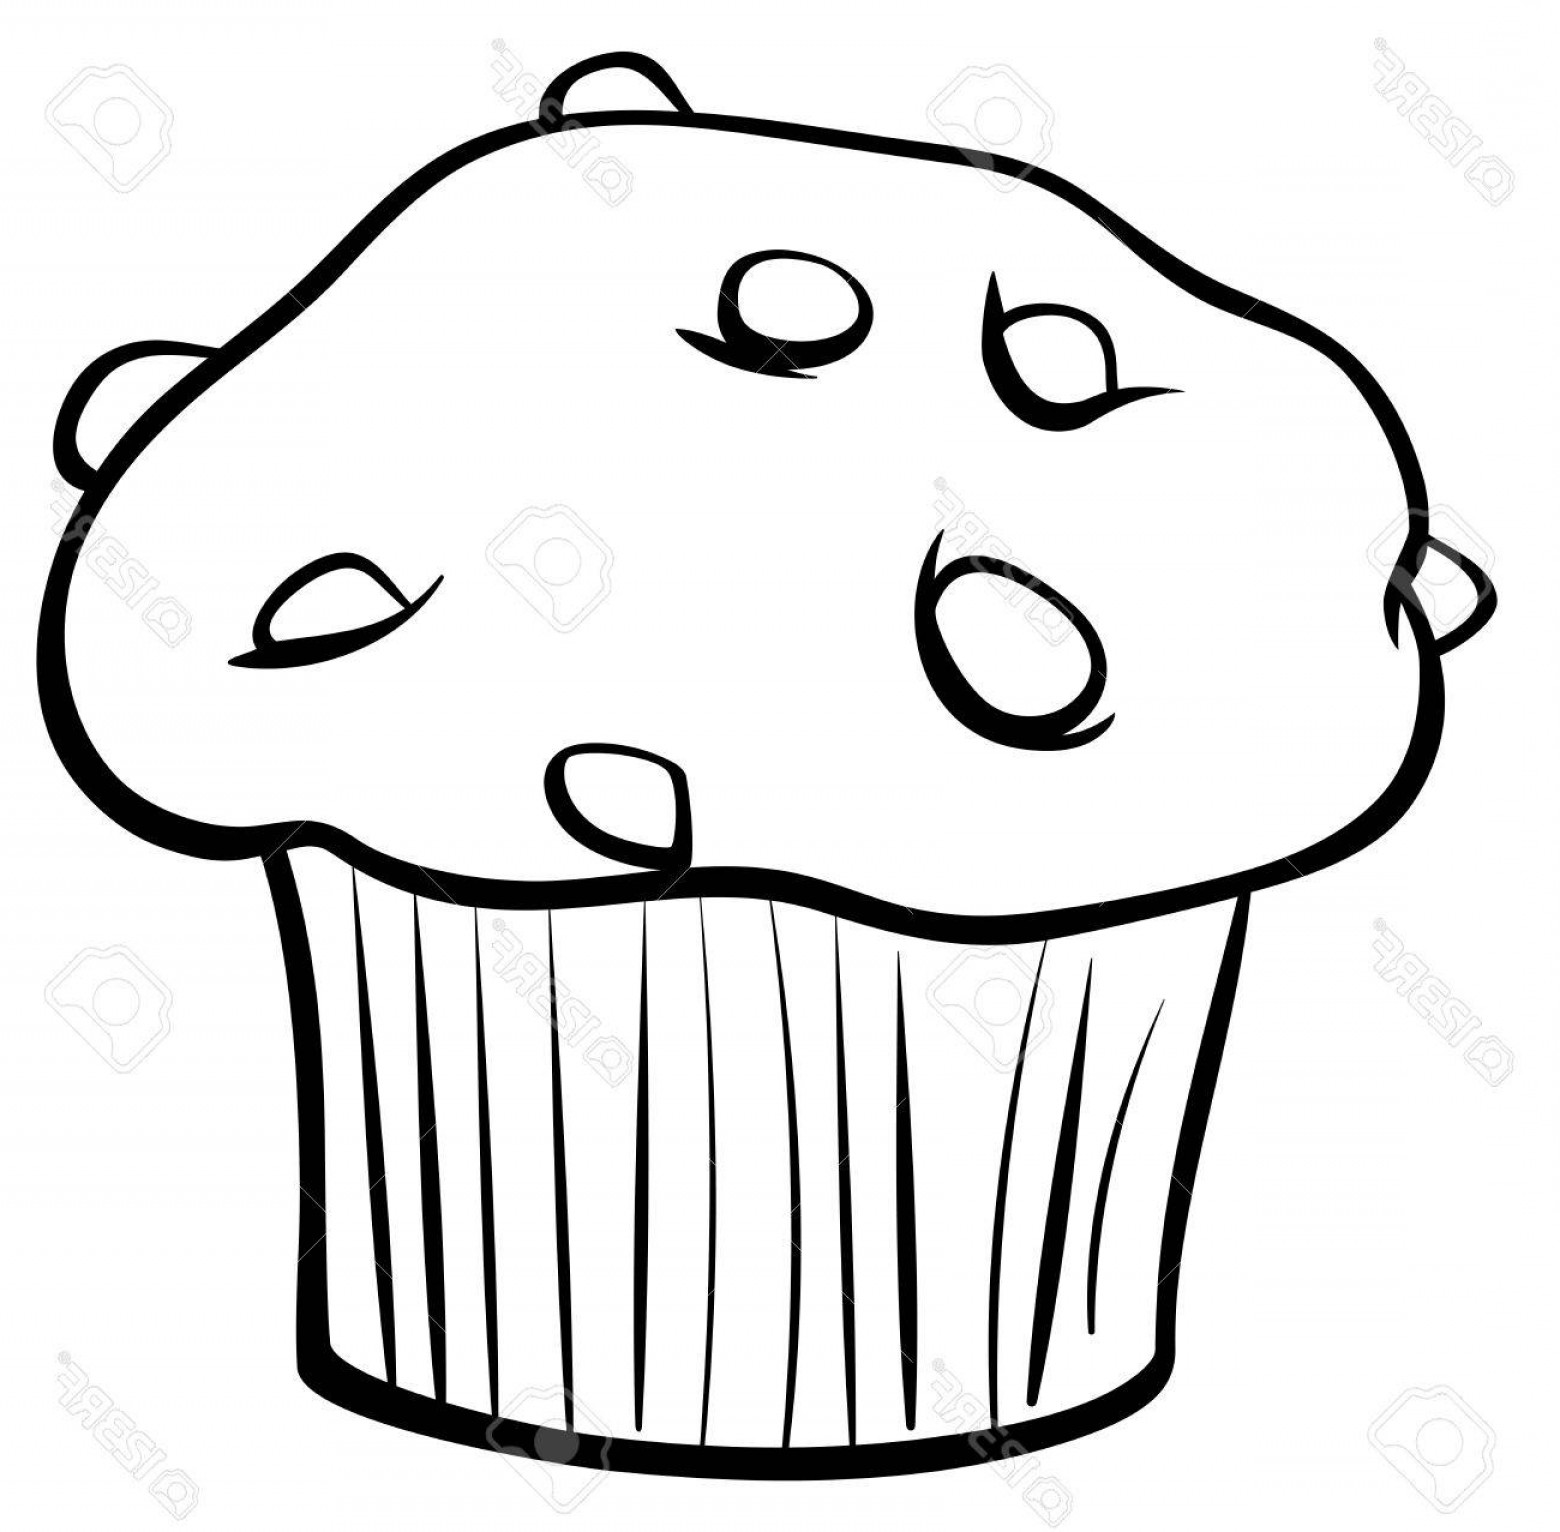 Chocolate Clip Art Vector: Photostock Vector Black And White Cartoon Illustration Of Sweet Muffin Cake With Chunks Of Chocolate Clip Art Food Obj